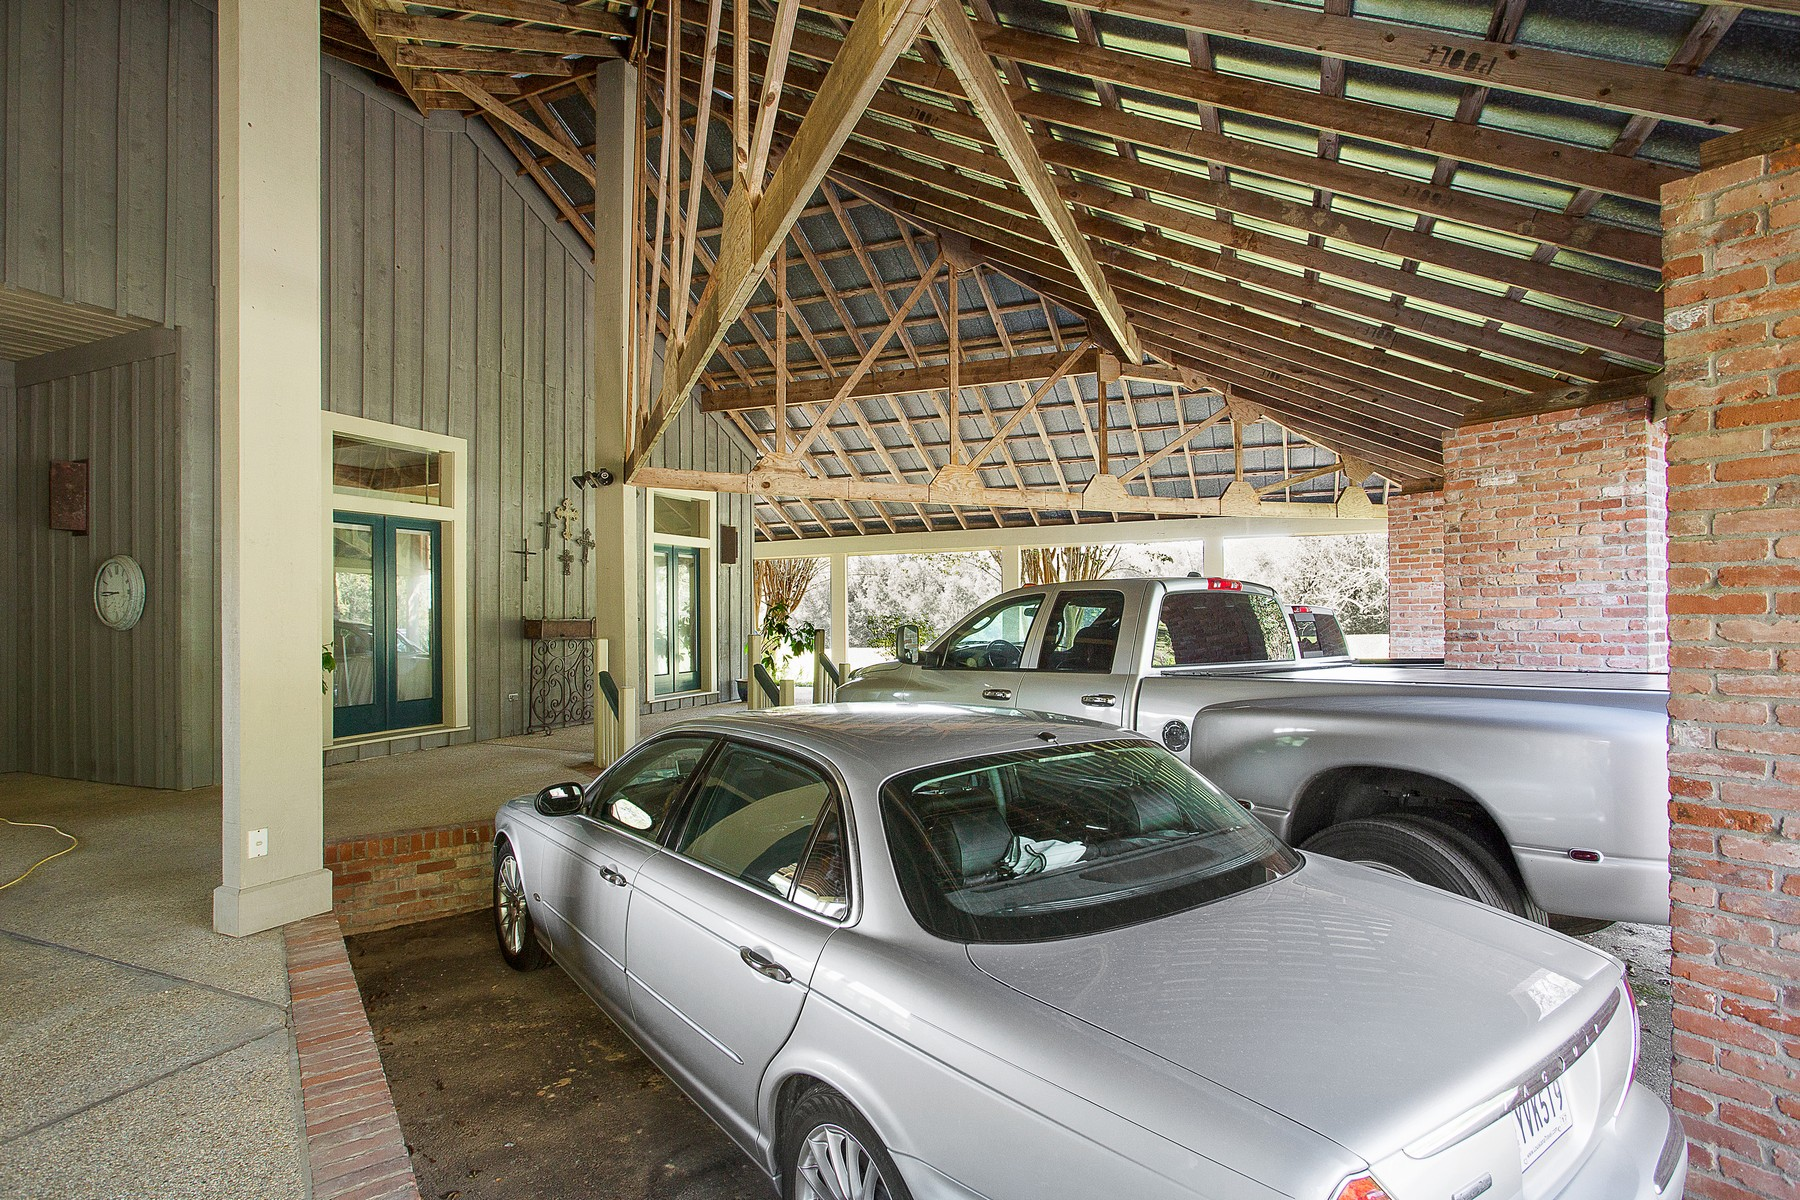 Additional photo for property listing at 807 Ogden Rd 80799 Ogden Rd Covington, Louisiana 70435 United States